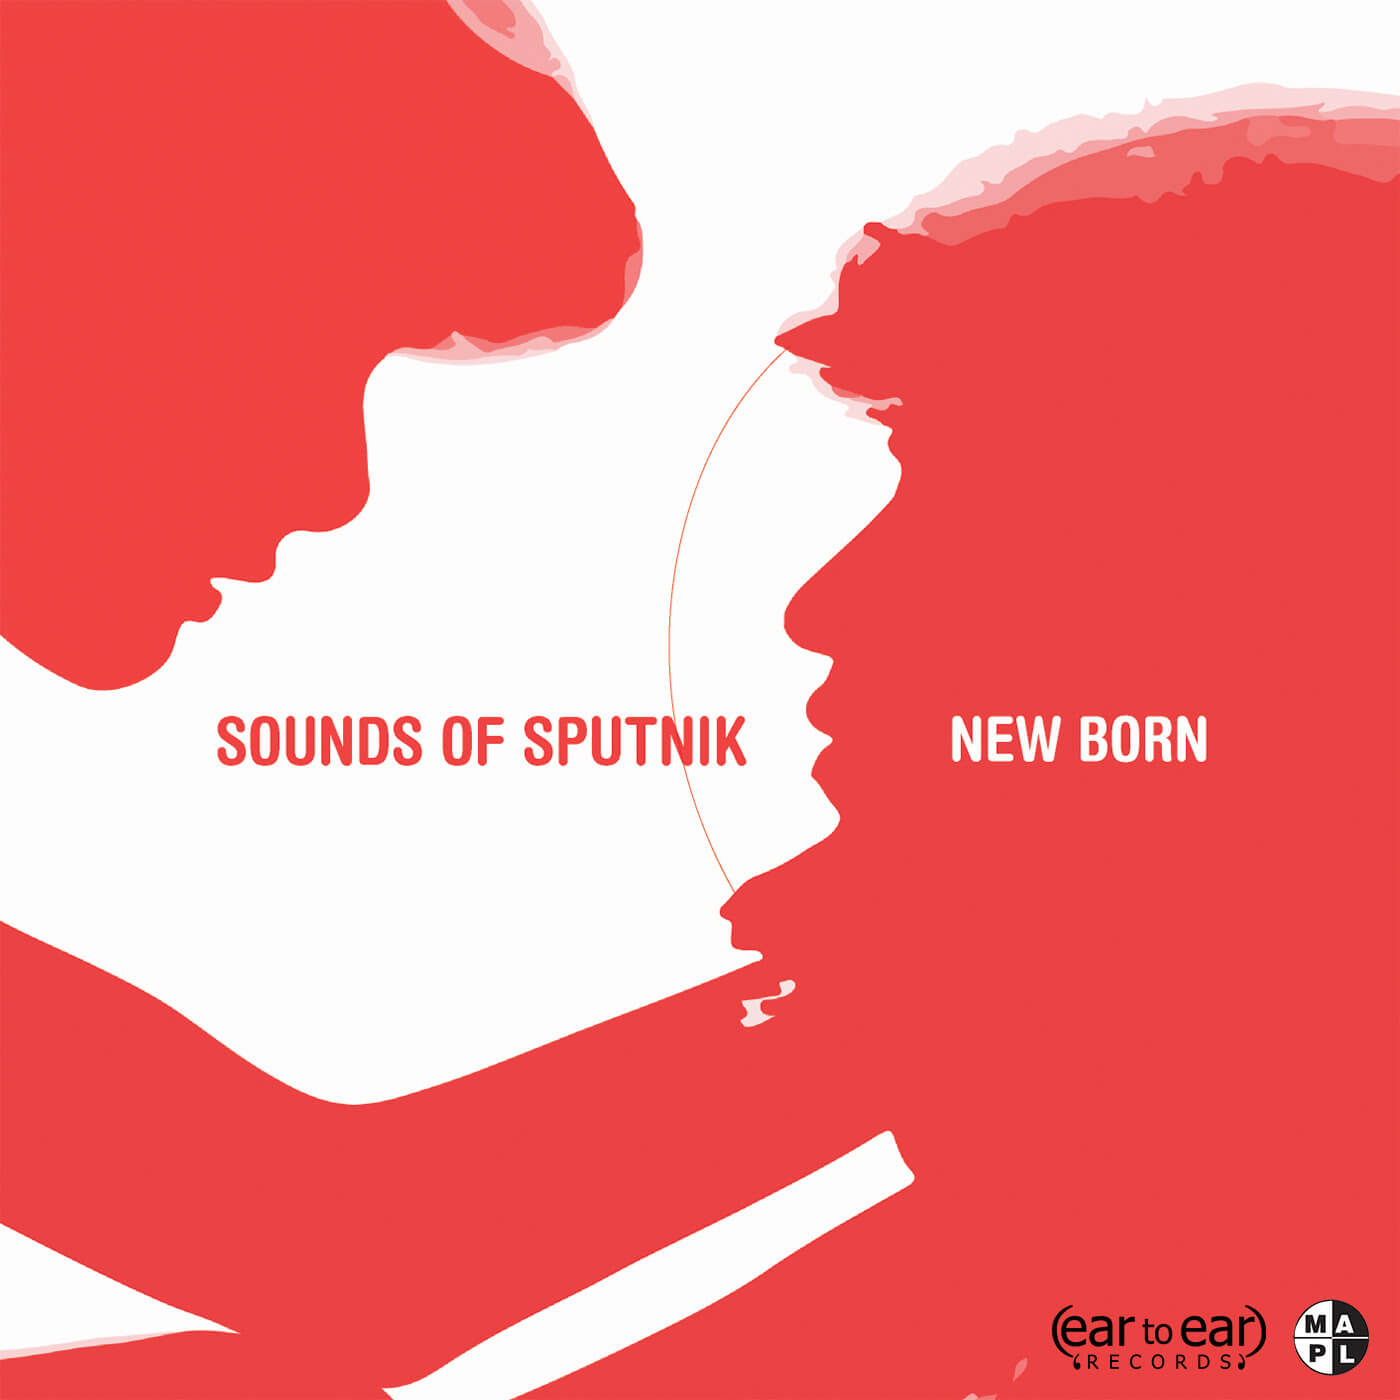 Sounds of Sputnik - New Born Feat. Ummagma 5